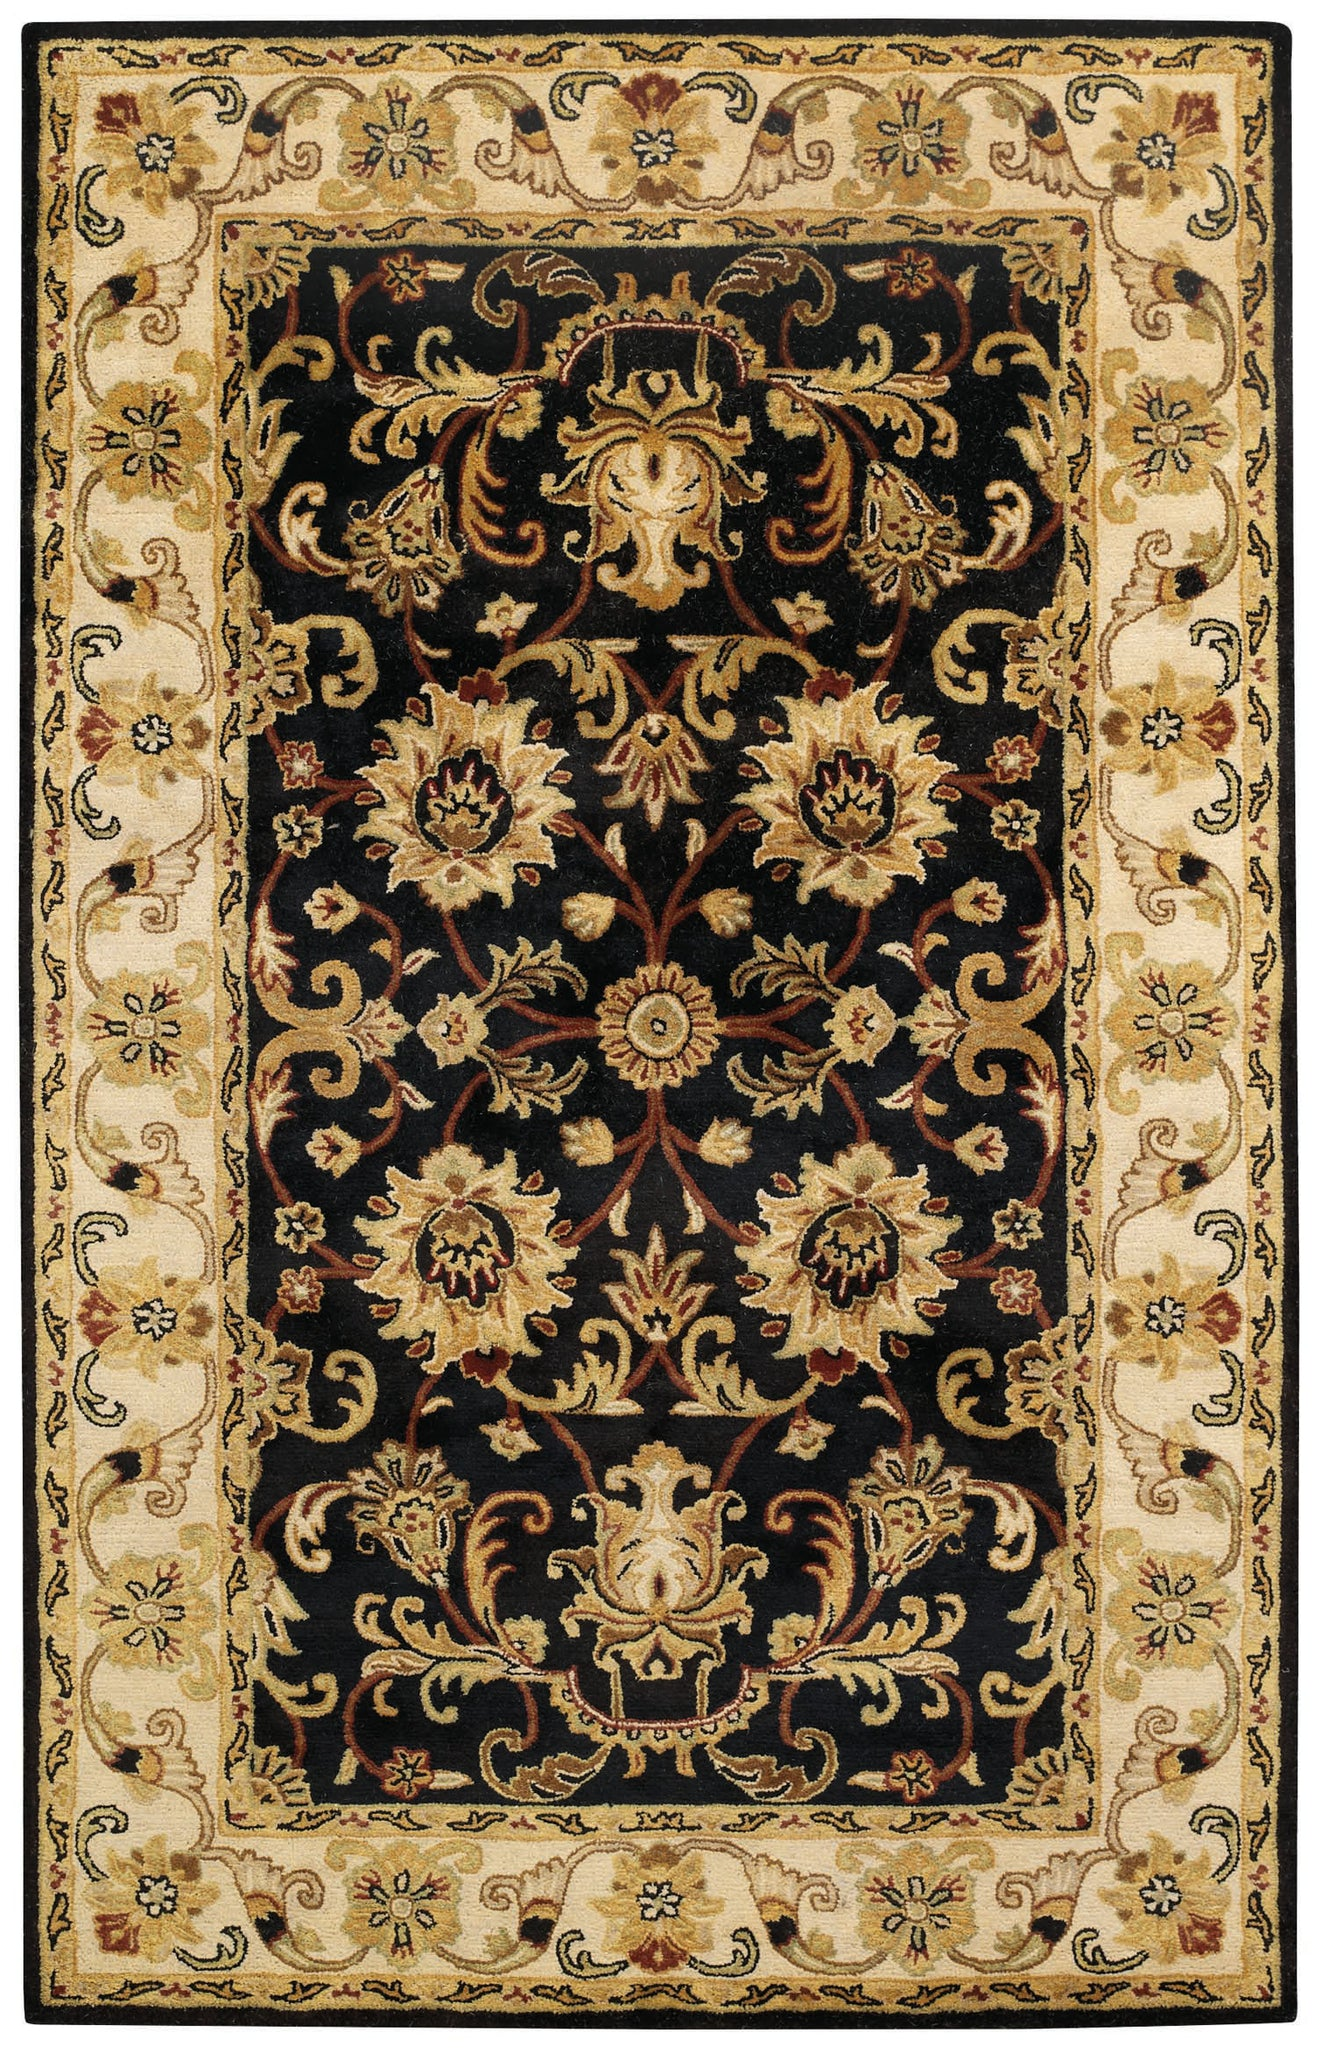 Capel Guilded 9205 Onyx 360 Area Rug main image